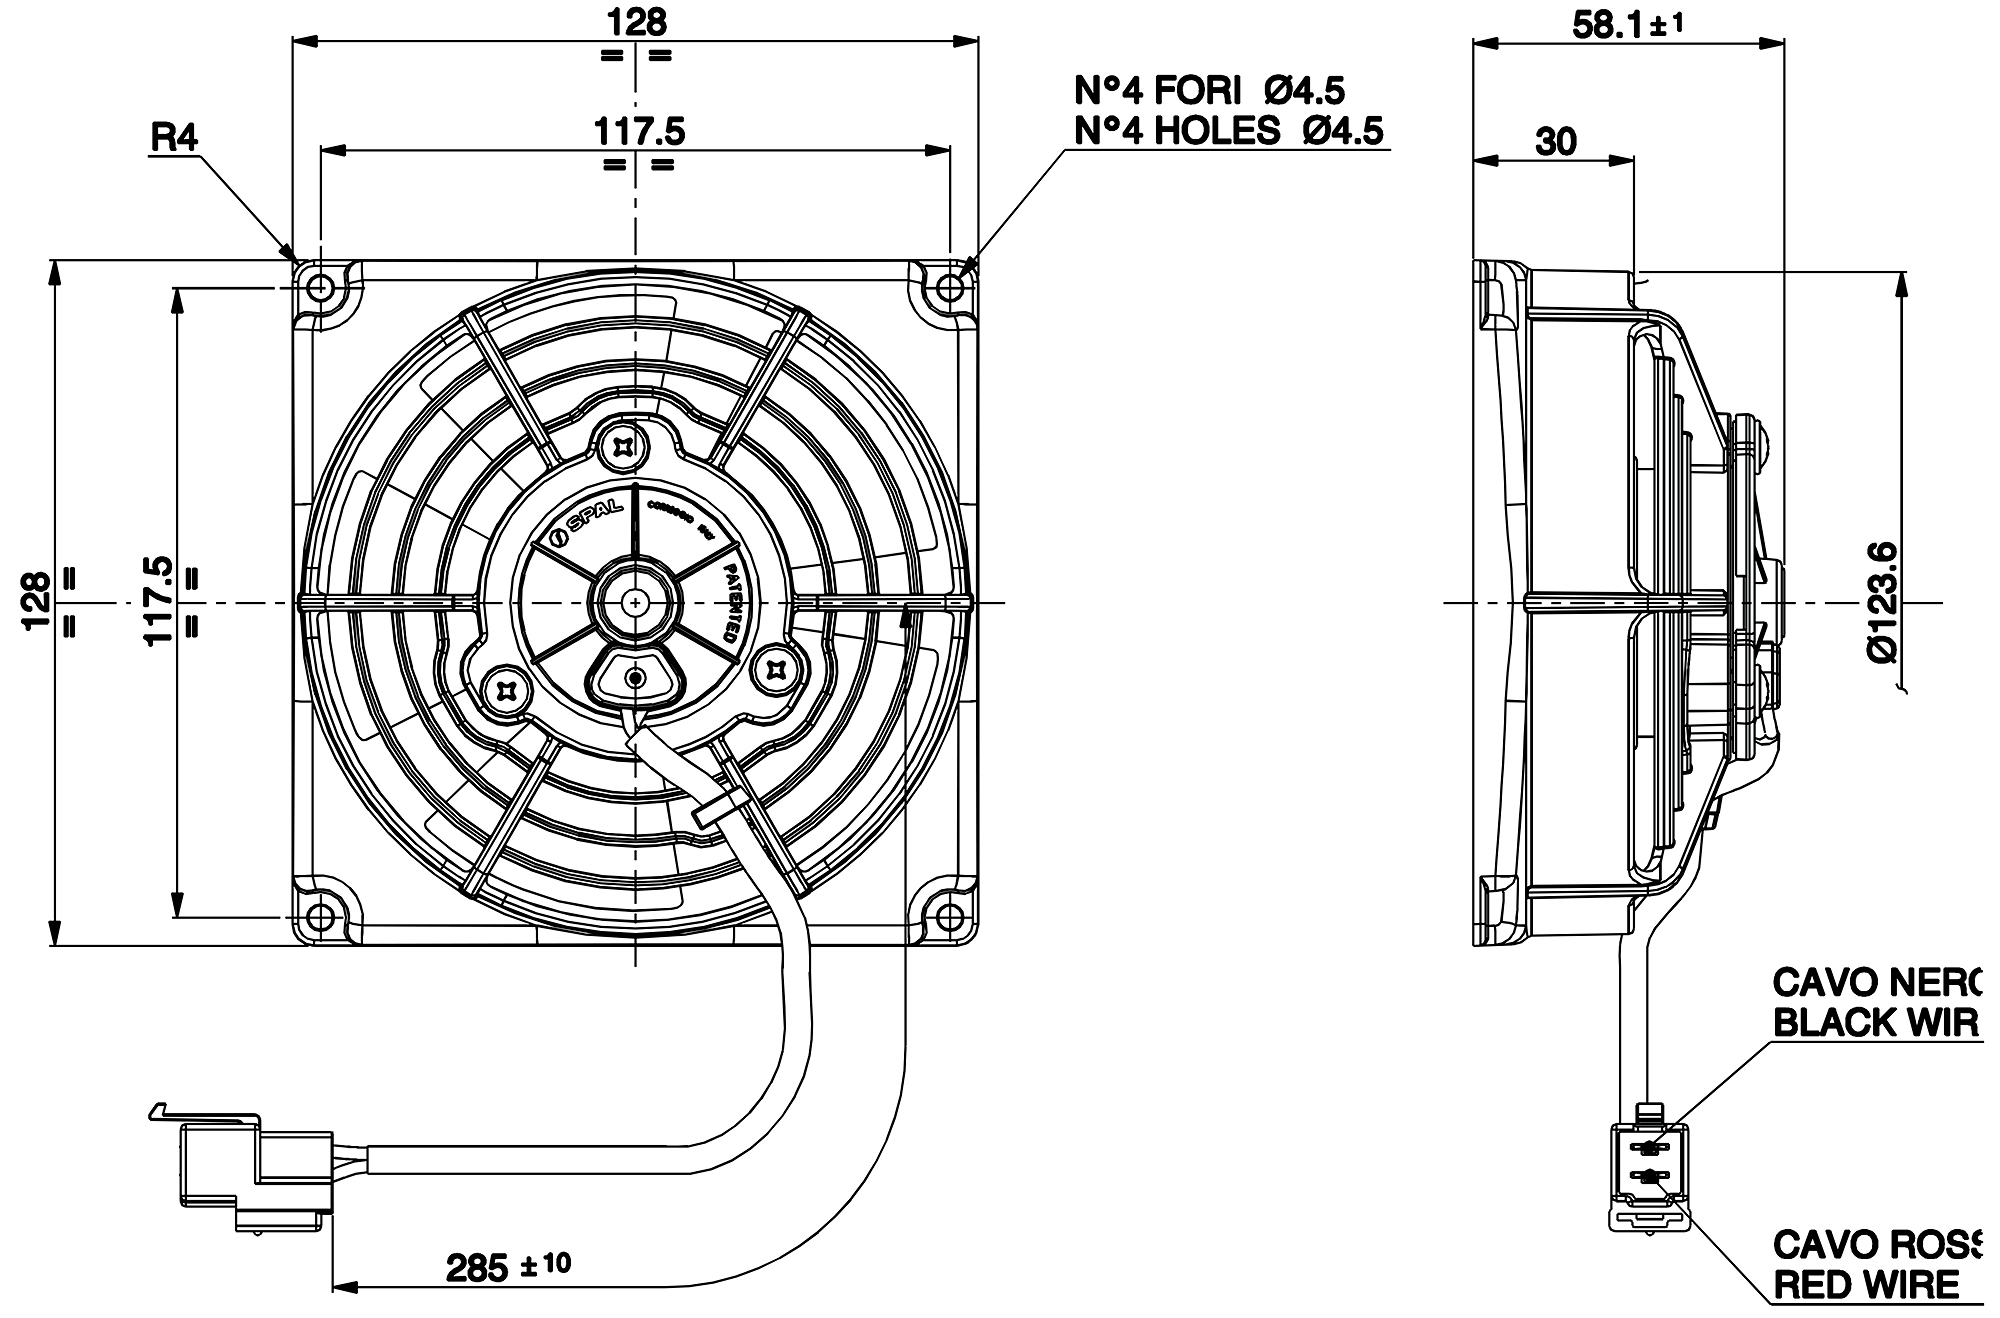 hight resolution of spal fans wiring diagram 19 wiring diagrams konsult spal fan controller wiring diagram spal fan wiring diagram